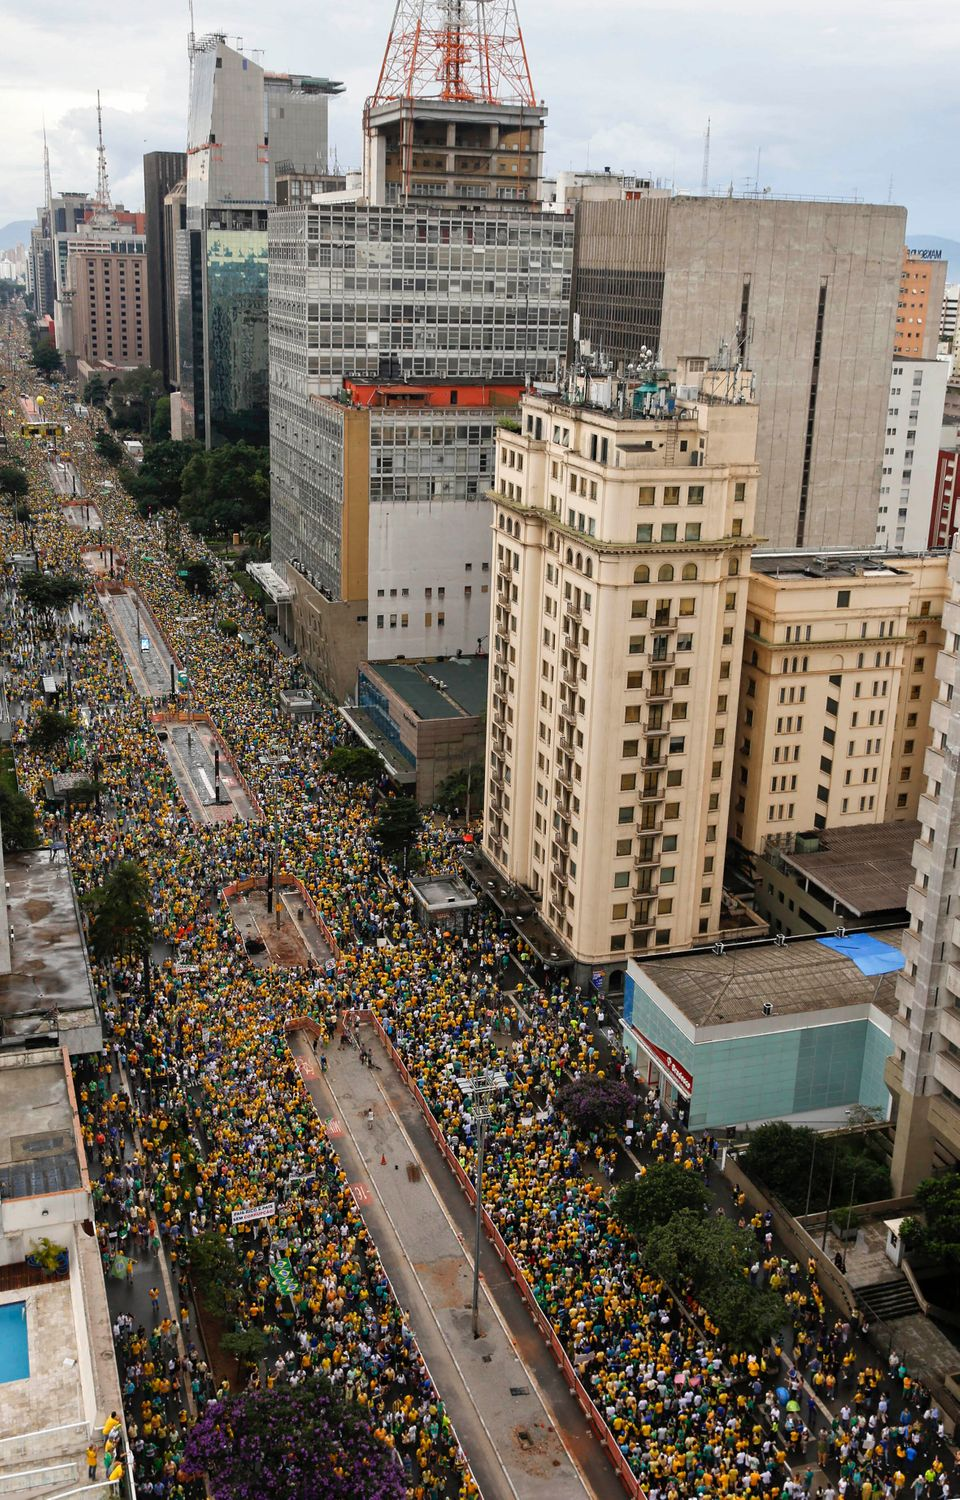 Demonstrators fill Paulista Avenue as they march to demand the impeachment of Brazil's President Dilma Rousseff in Sao Paulo,